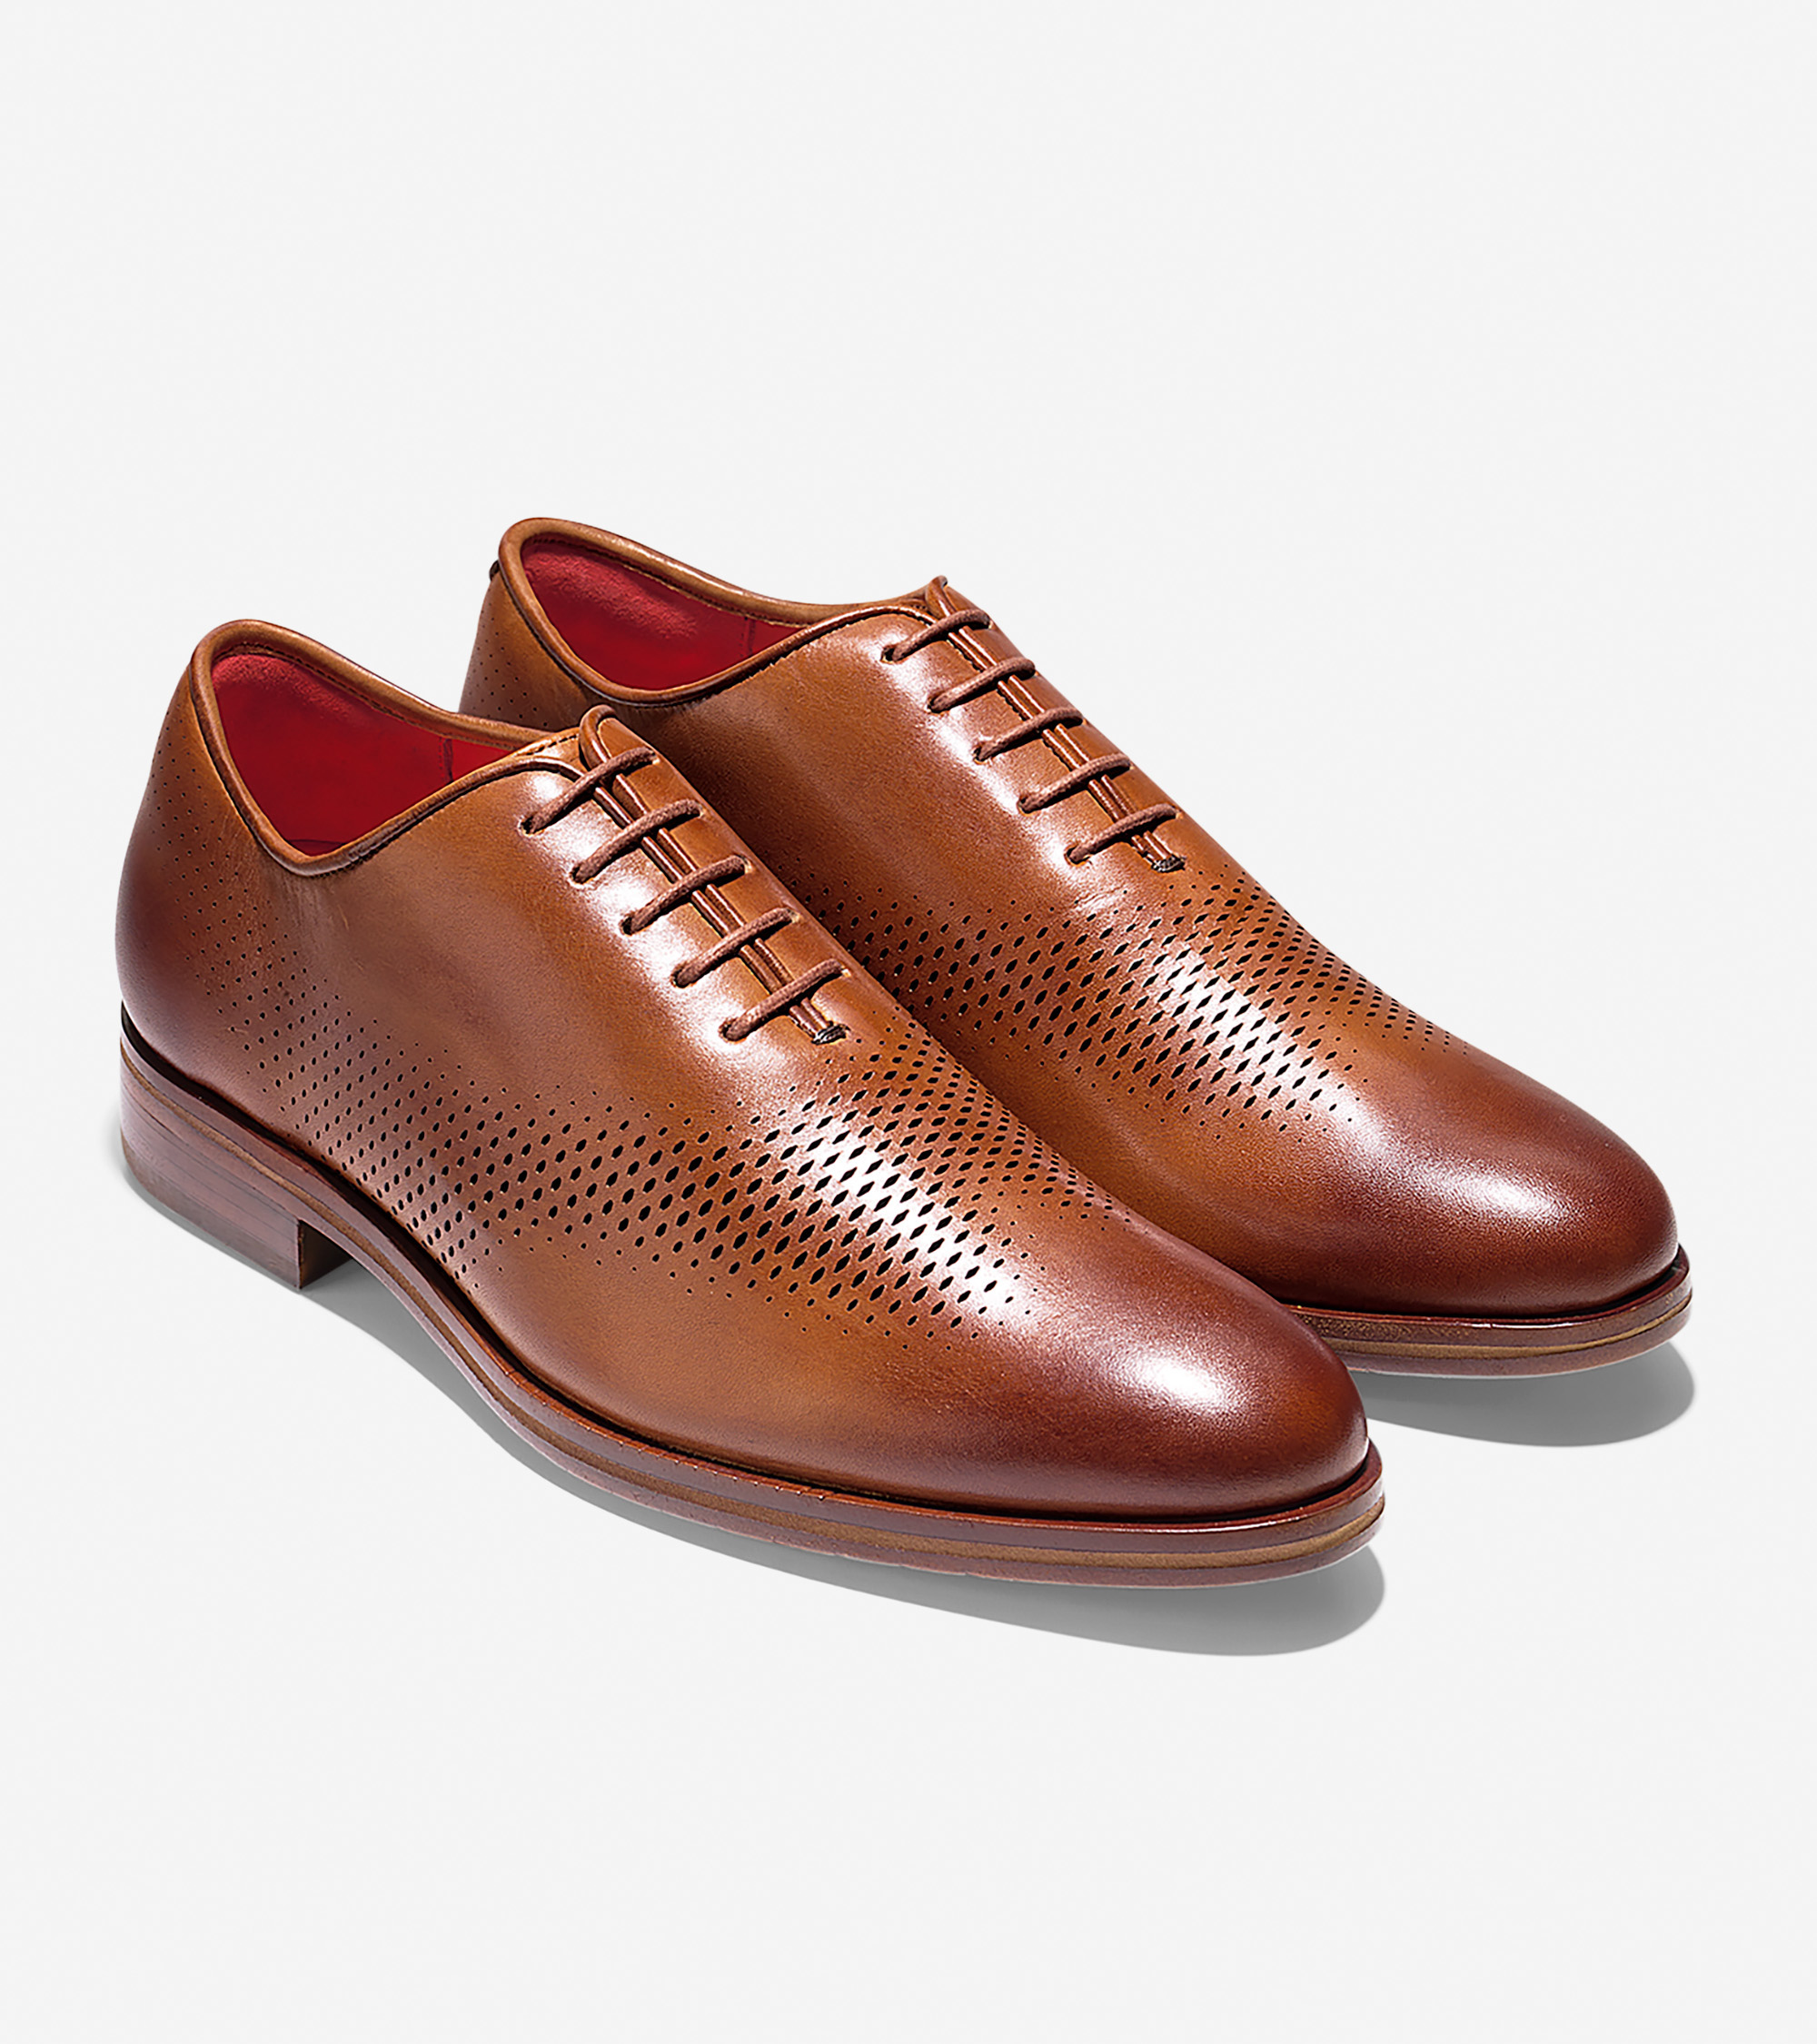 Cole Haan American Classic Gramercy Derby Wholecut Dress Oxford In British Tan